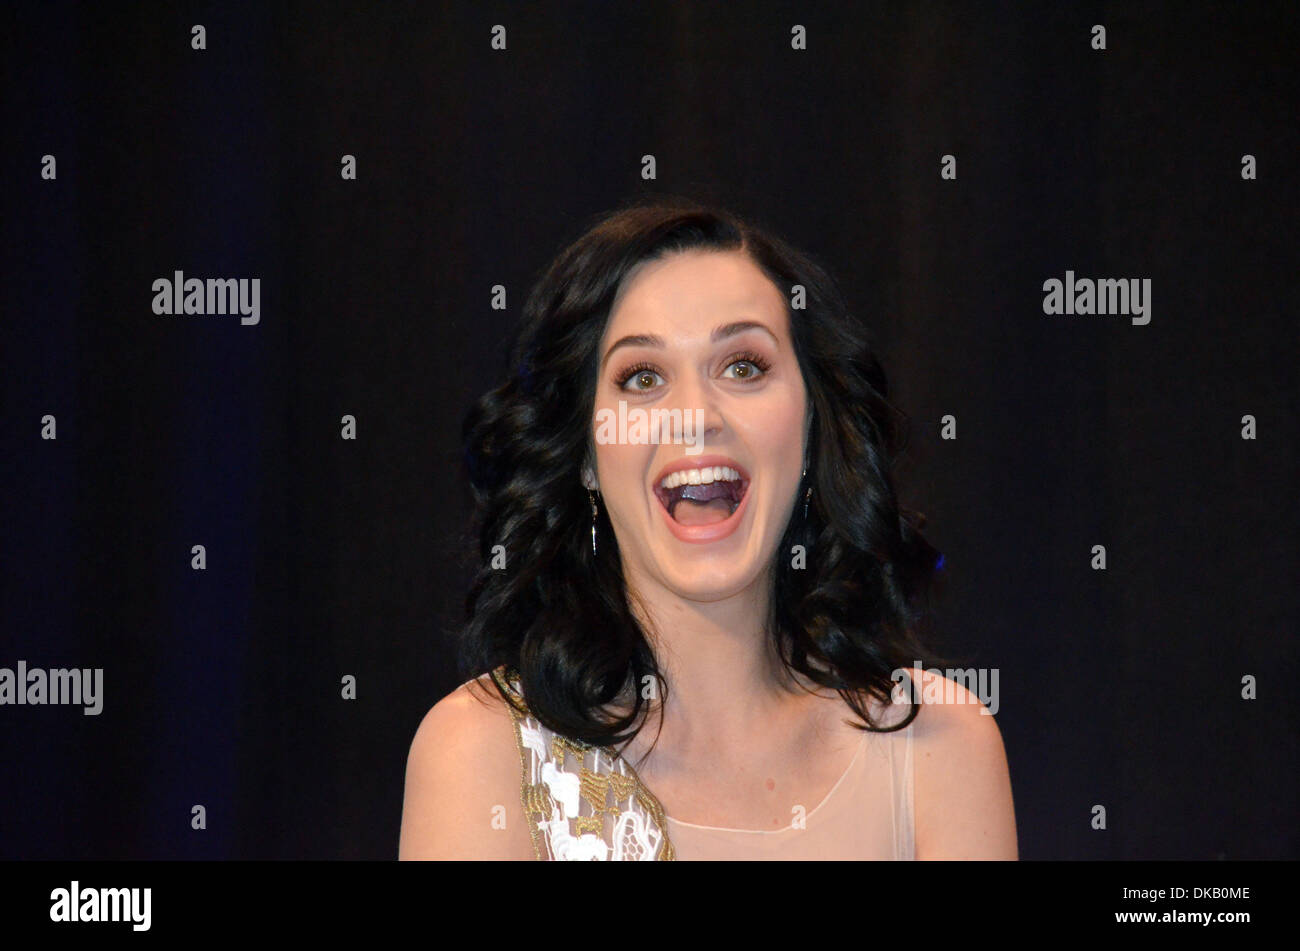 New York City, New York, USA. 03rd Dec, 2013. Pop singer Katy Perry talks at the Unicef headquarters in New York City, New York, USA, 03 December 2013. Perry was appointed as a good will ambassador by the United Nations Children's Fund (UNICEF). Her song 'Unconditionally' came out in the middle of October a result of her trip to the UNICEF camp in Madagascar. Photo: CHRIS MELZER/dpa/Alamy Live News - Stock Image